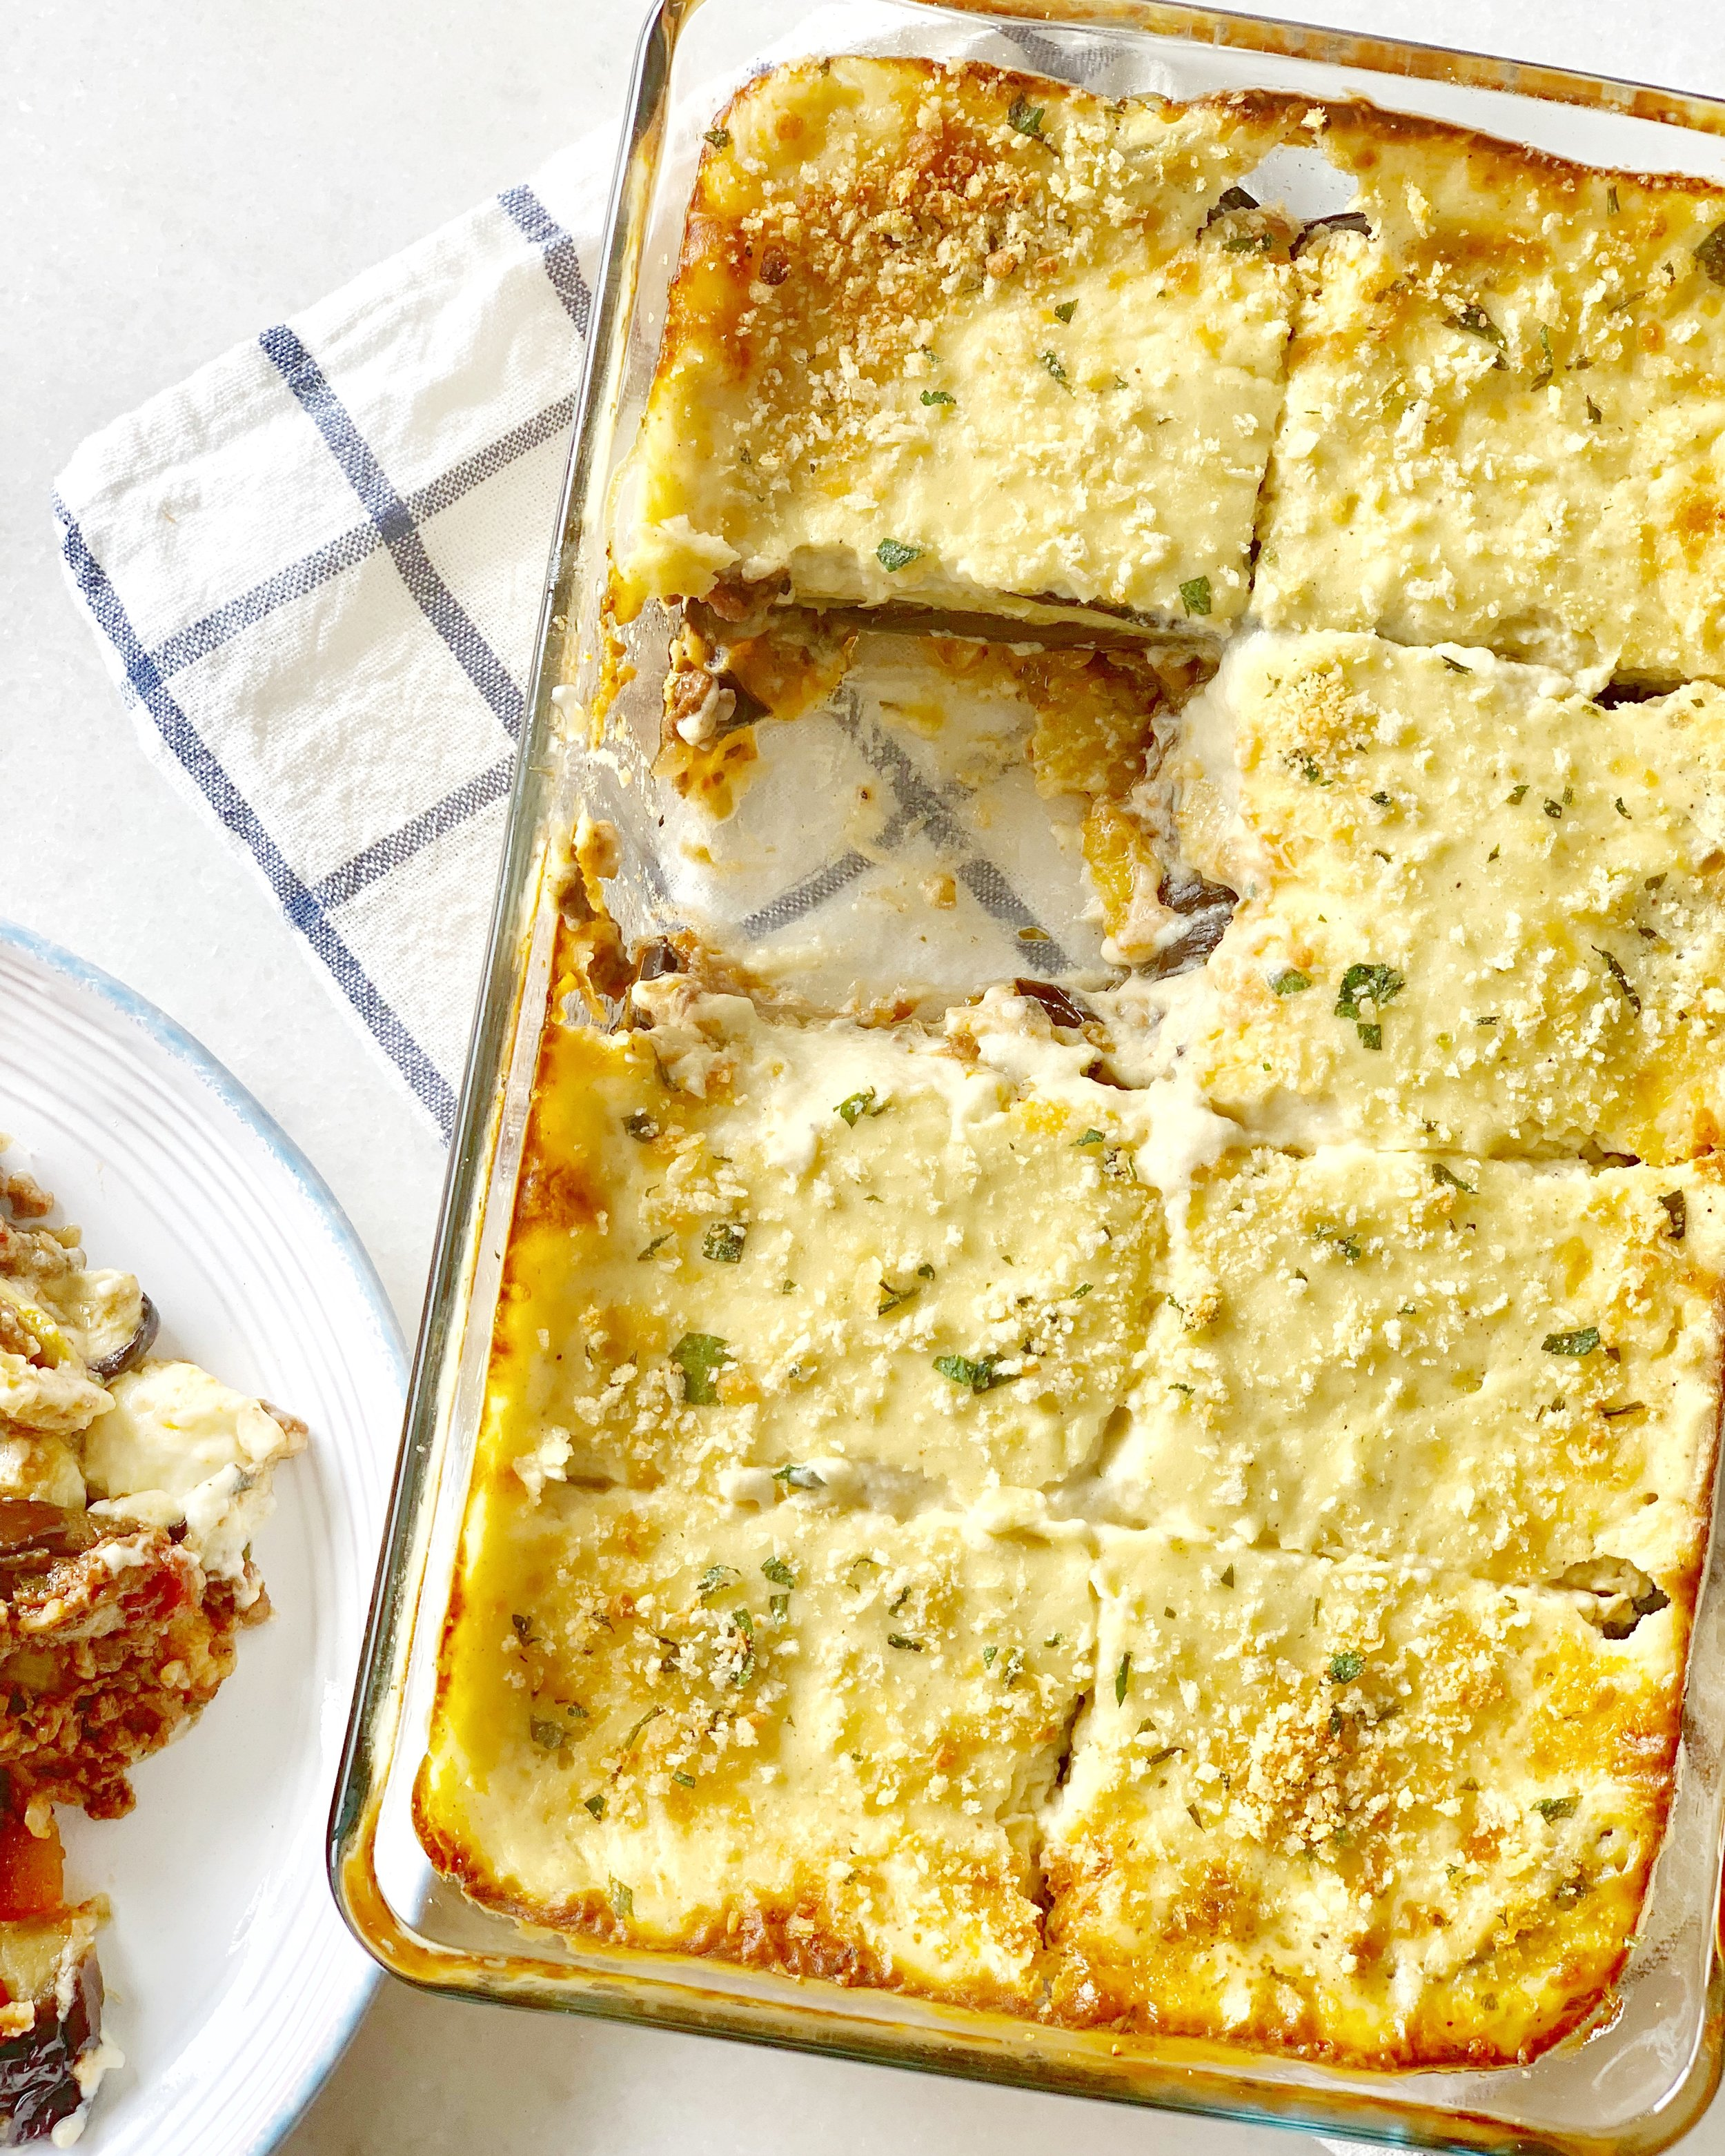 Moussaka: a hearty Greek casserole with layers of eggplant, potato, and minced meat all topped with a thickened and cheesy béchamel.